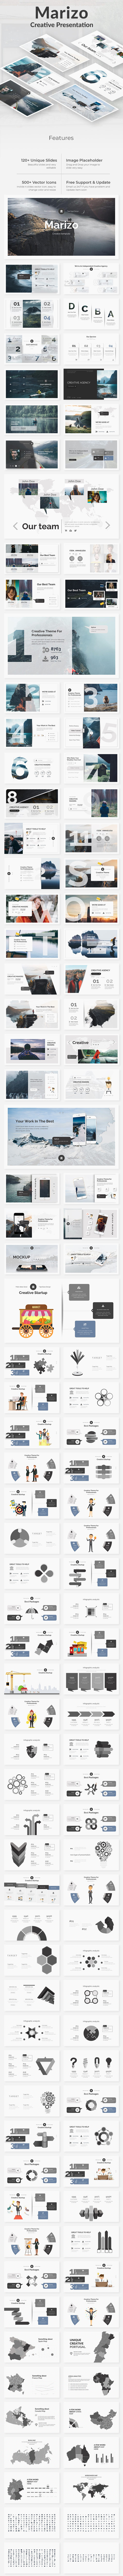 Marizo Creative Powerpoint Template - Creative PowerPoint Templates